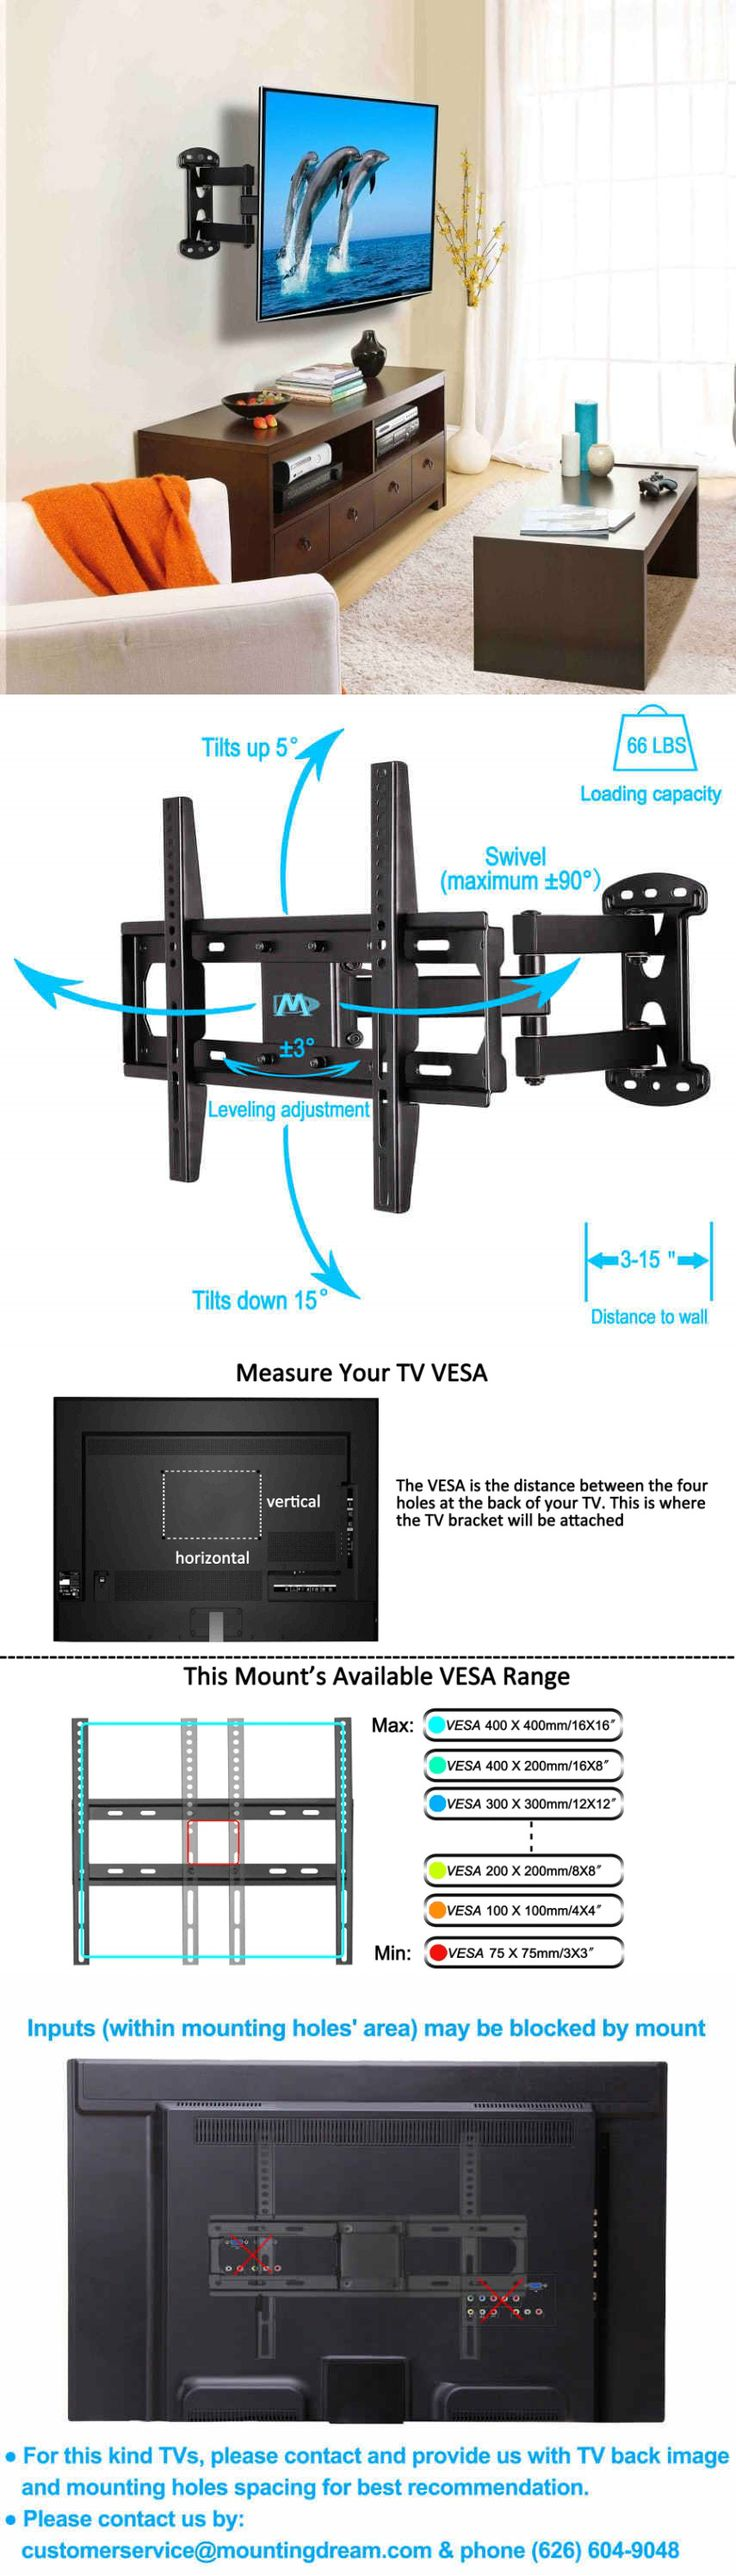 TV Mounts and Brackets: Mounting Dream Tv Wall Mount Bracket For Most Of 26-55 Inch Led Lcd Ole Screen BUY IT NOW ONLY: $30.71